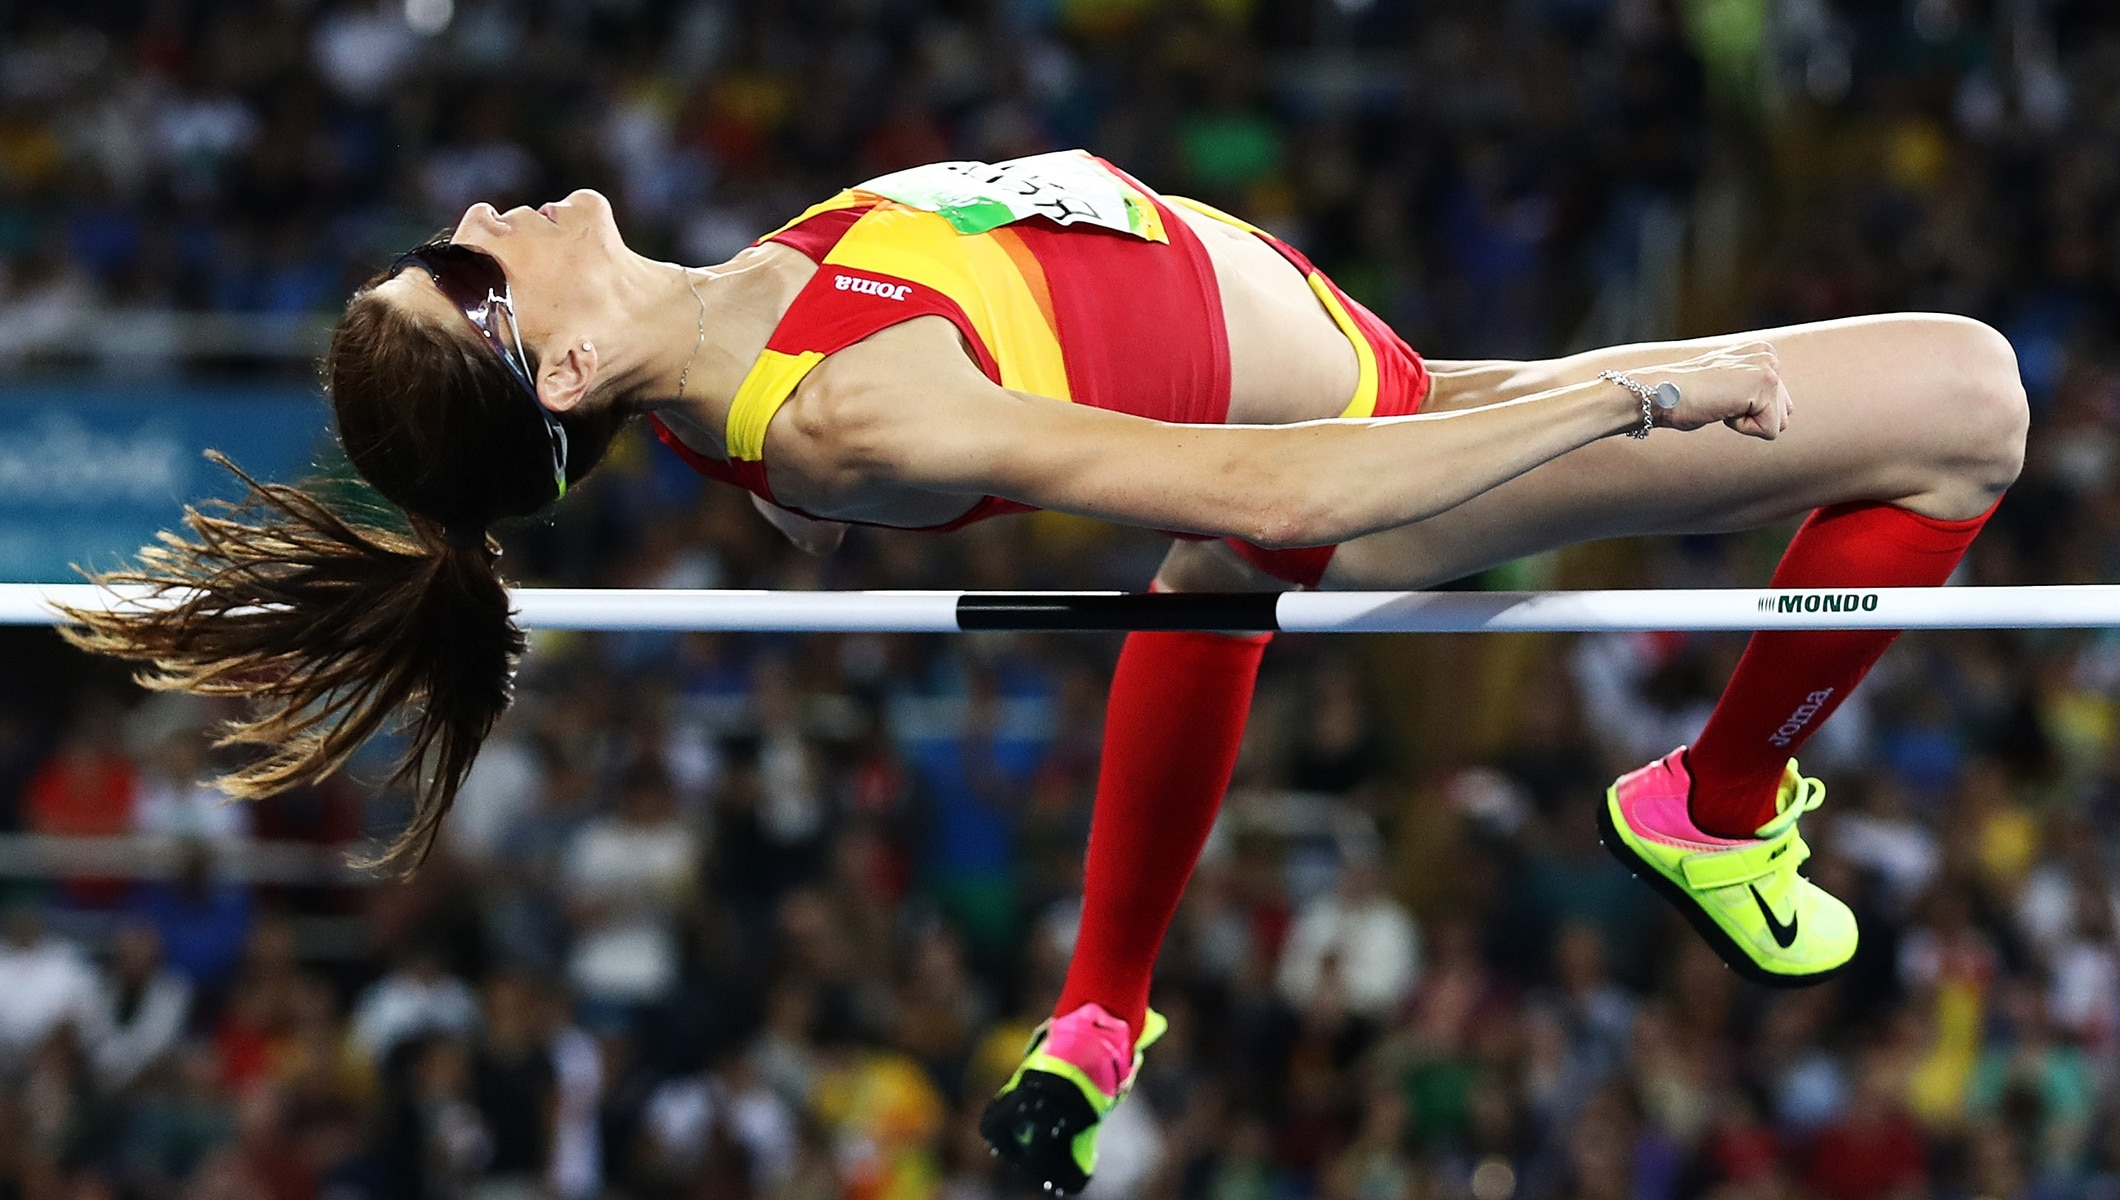 Experience prevails as Beitia wins high jump - Olympic News